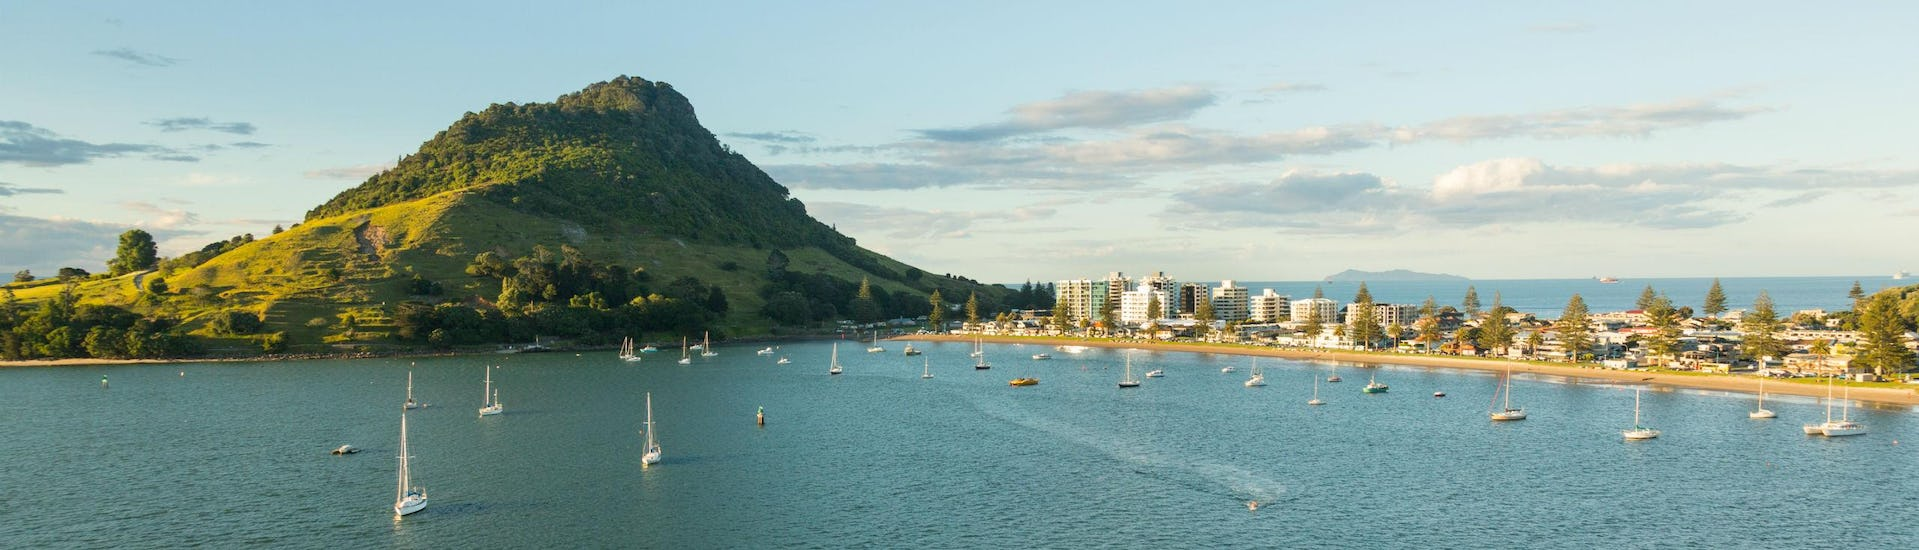 An image of Mount Maunganui in Tauranga, a city in the Bay of Plenty, where visitors can enjoy a range of rafting tours.